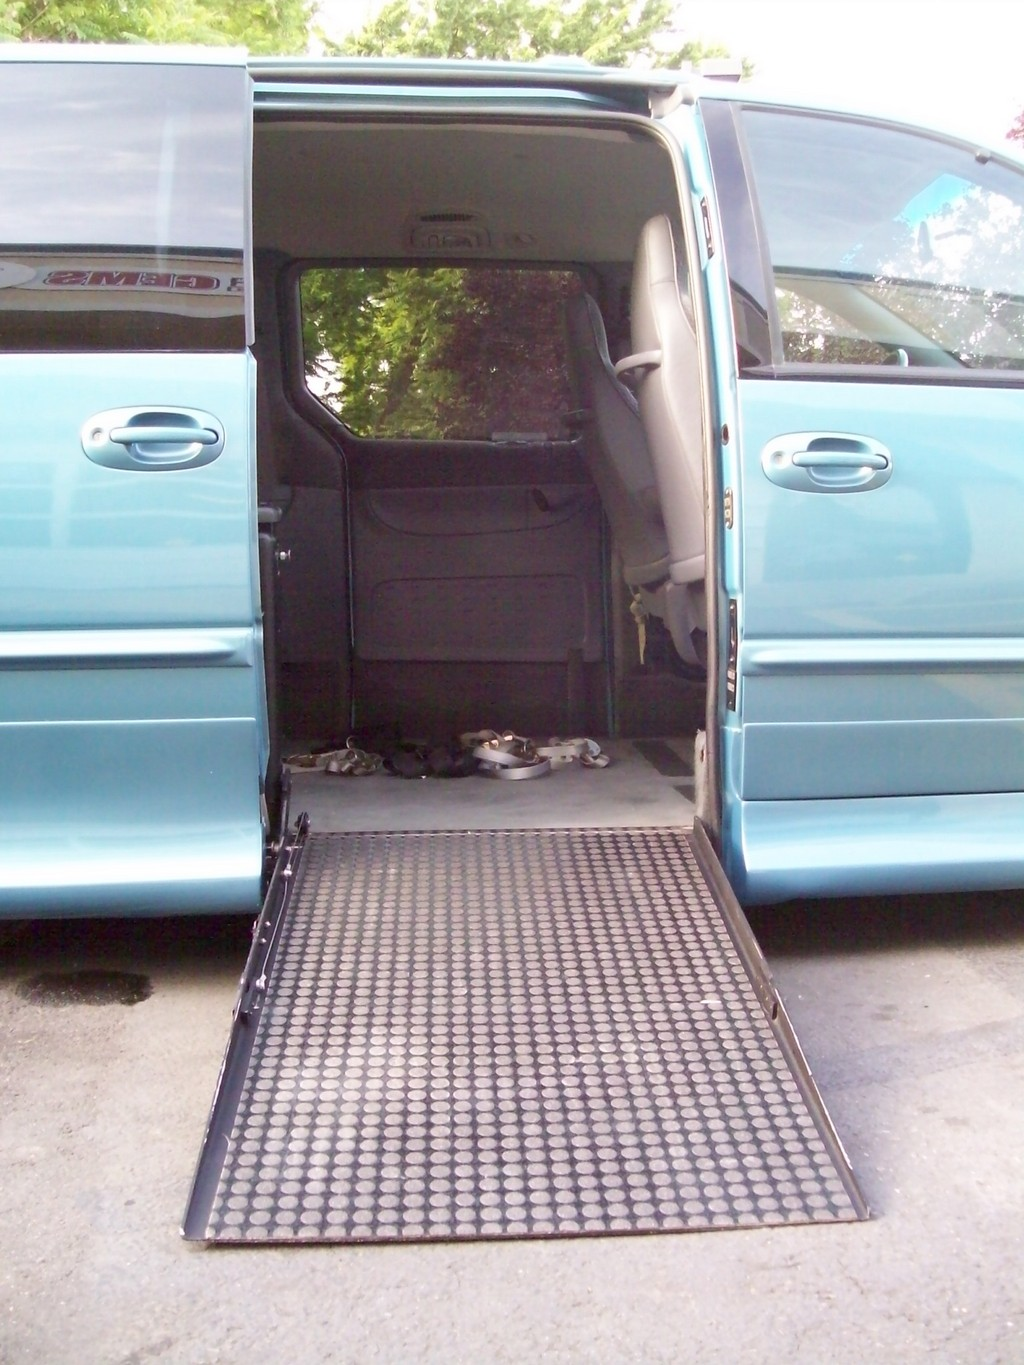 ebay wheelchair vans, hydraulic lift for wheelchair for a van, mini van wheelchair lift, wheelchair vans in health aids